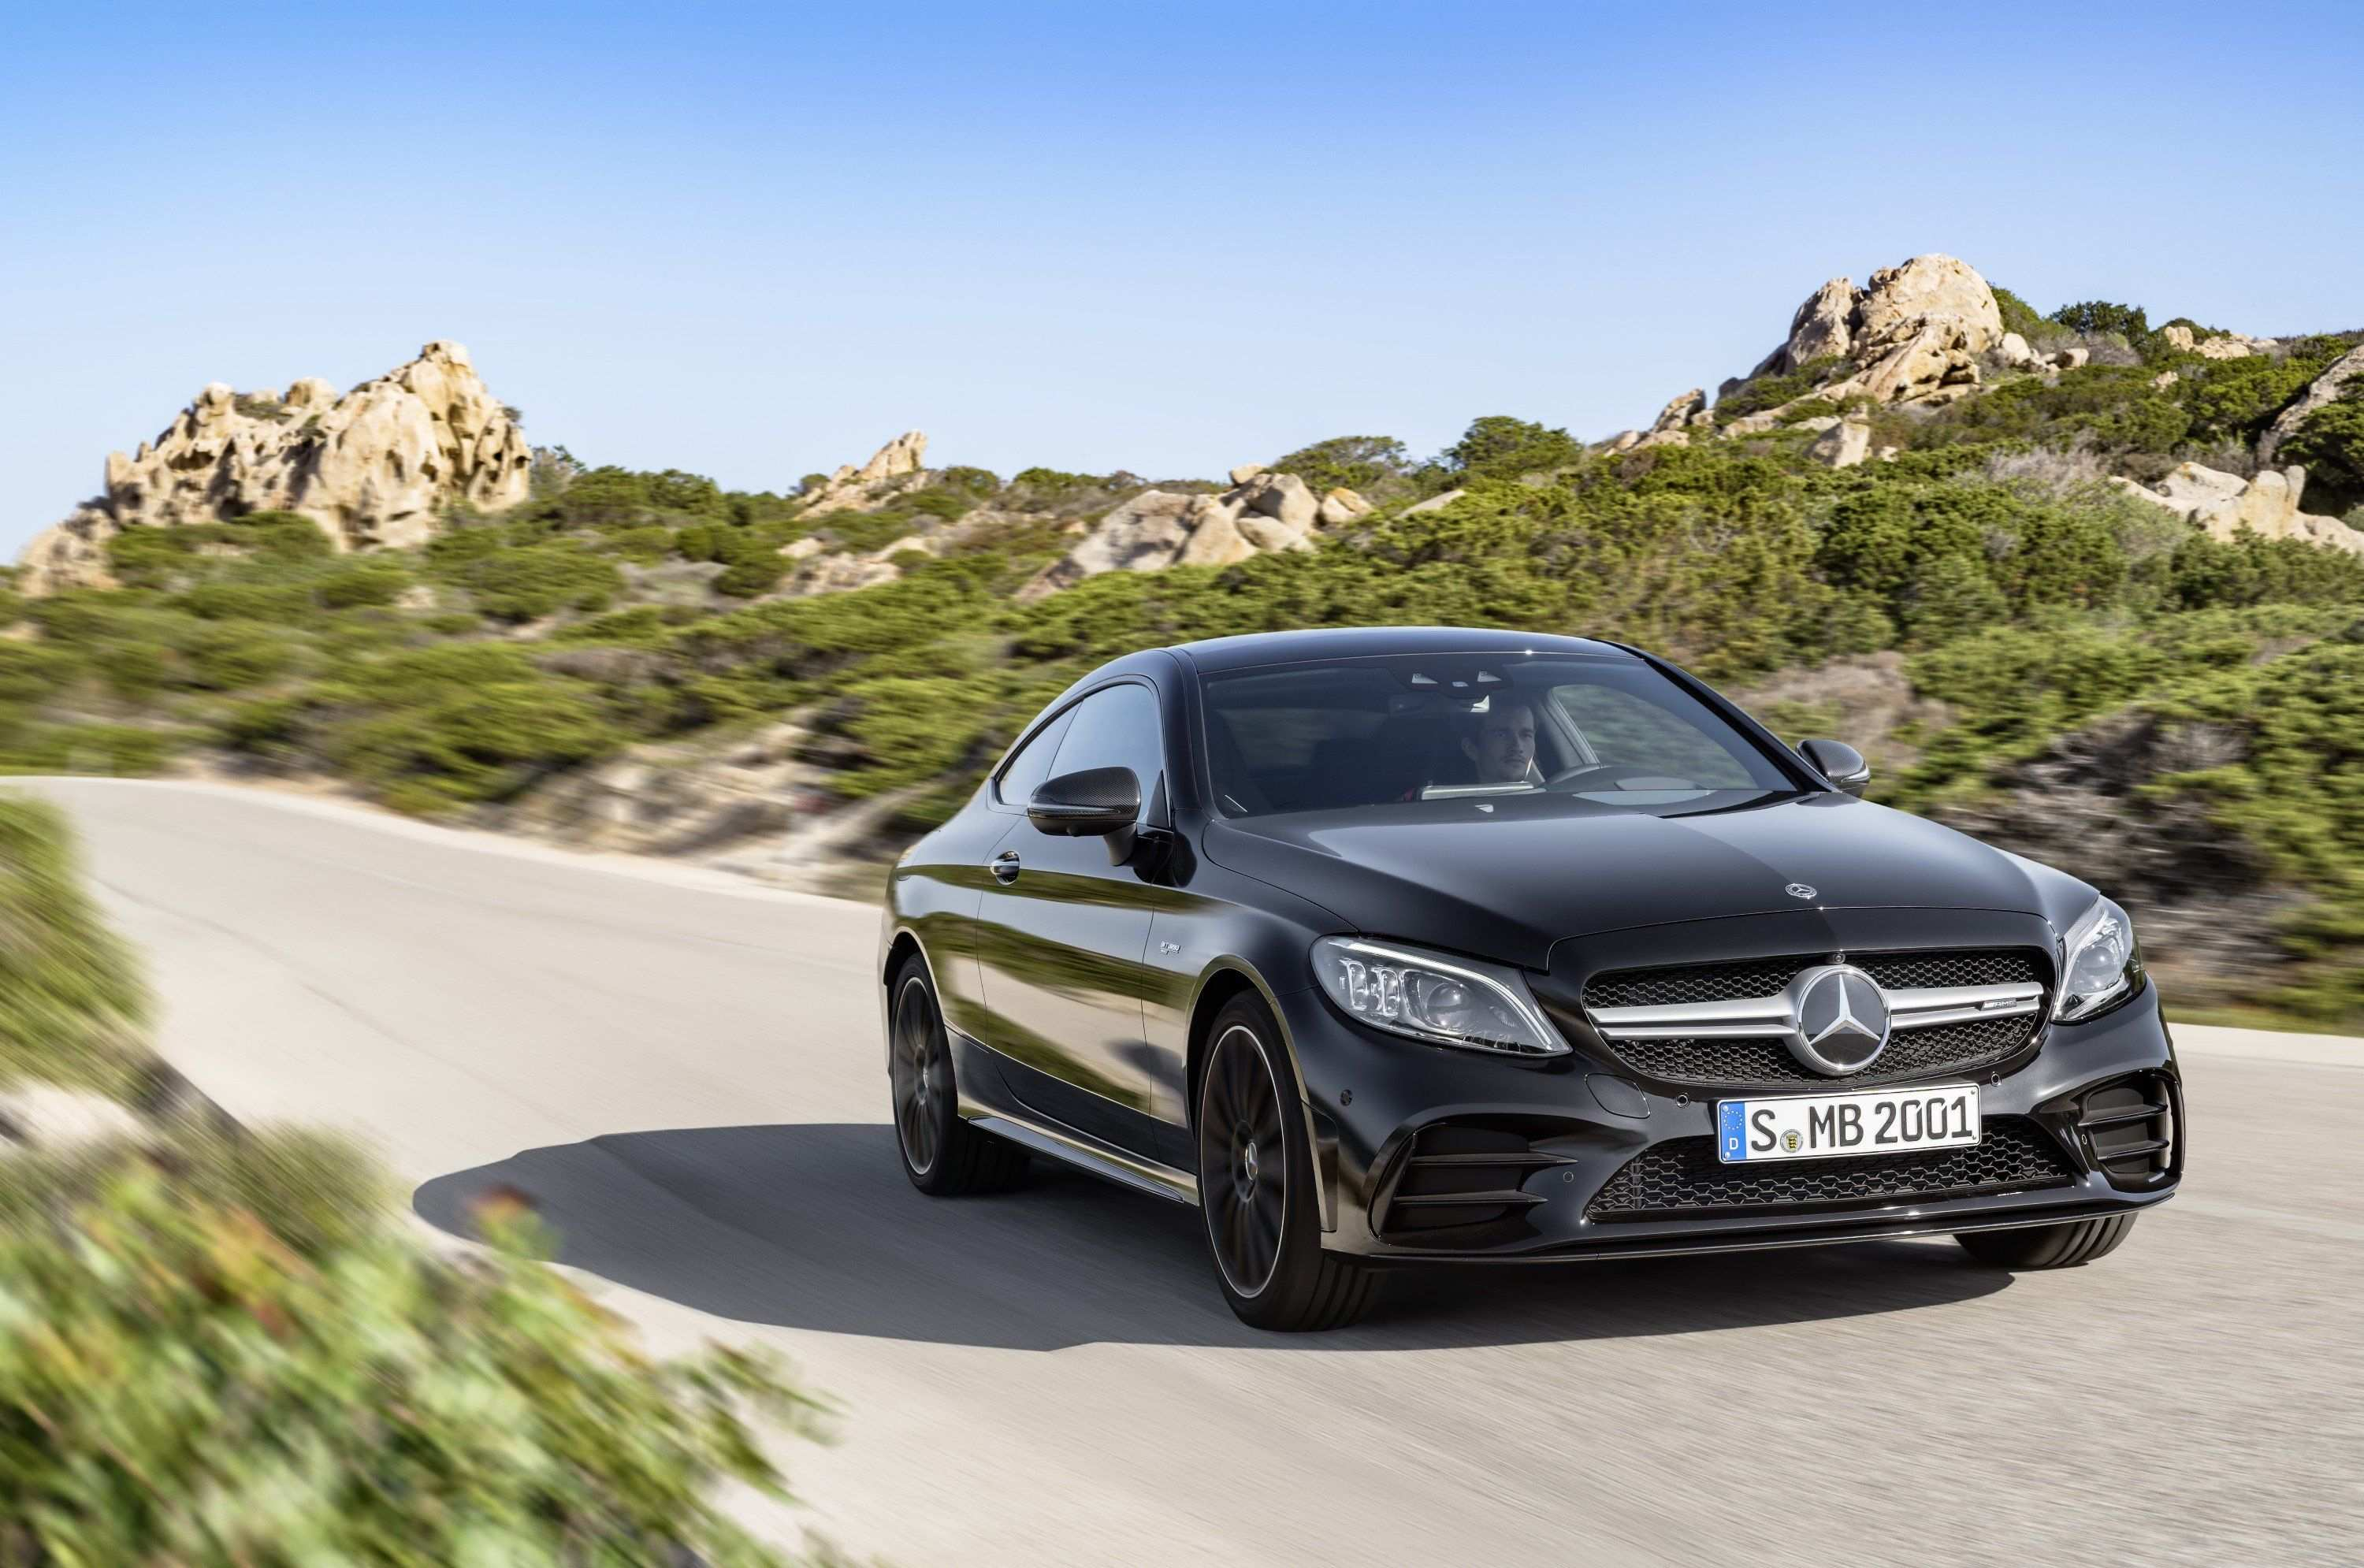 63 Concept of C Class Mercedes 2019 Release Specs And Review Interior with C Class Mercedes 2019 Release Specs And Review